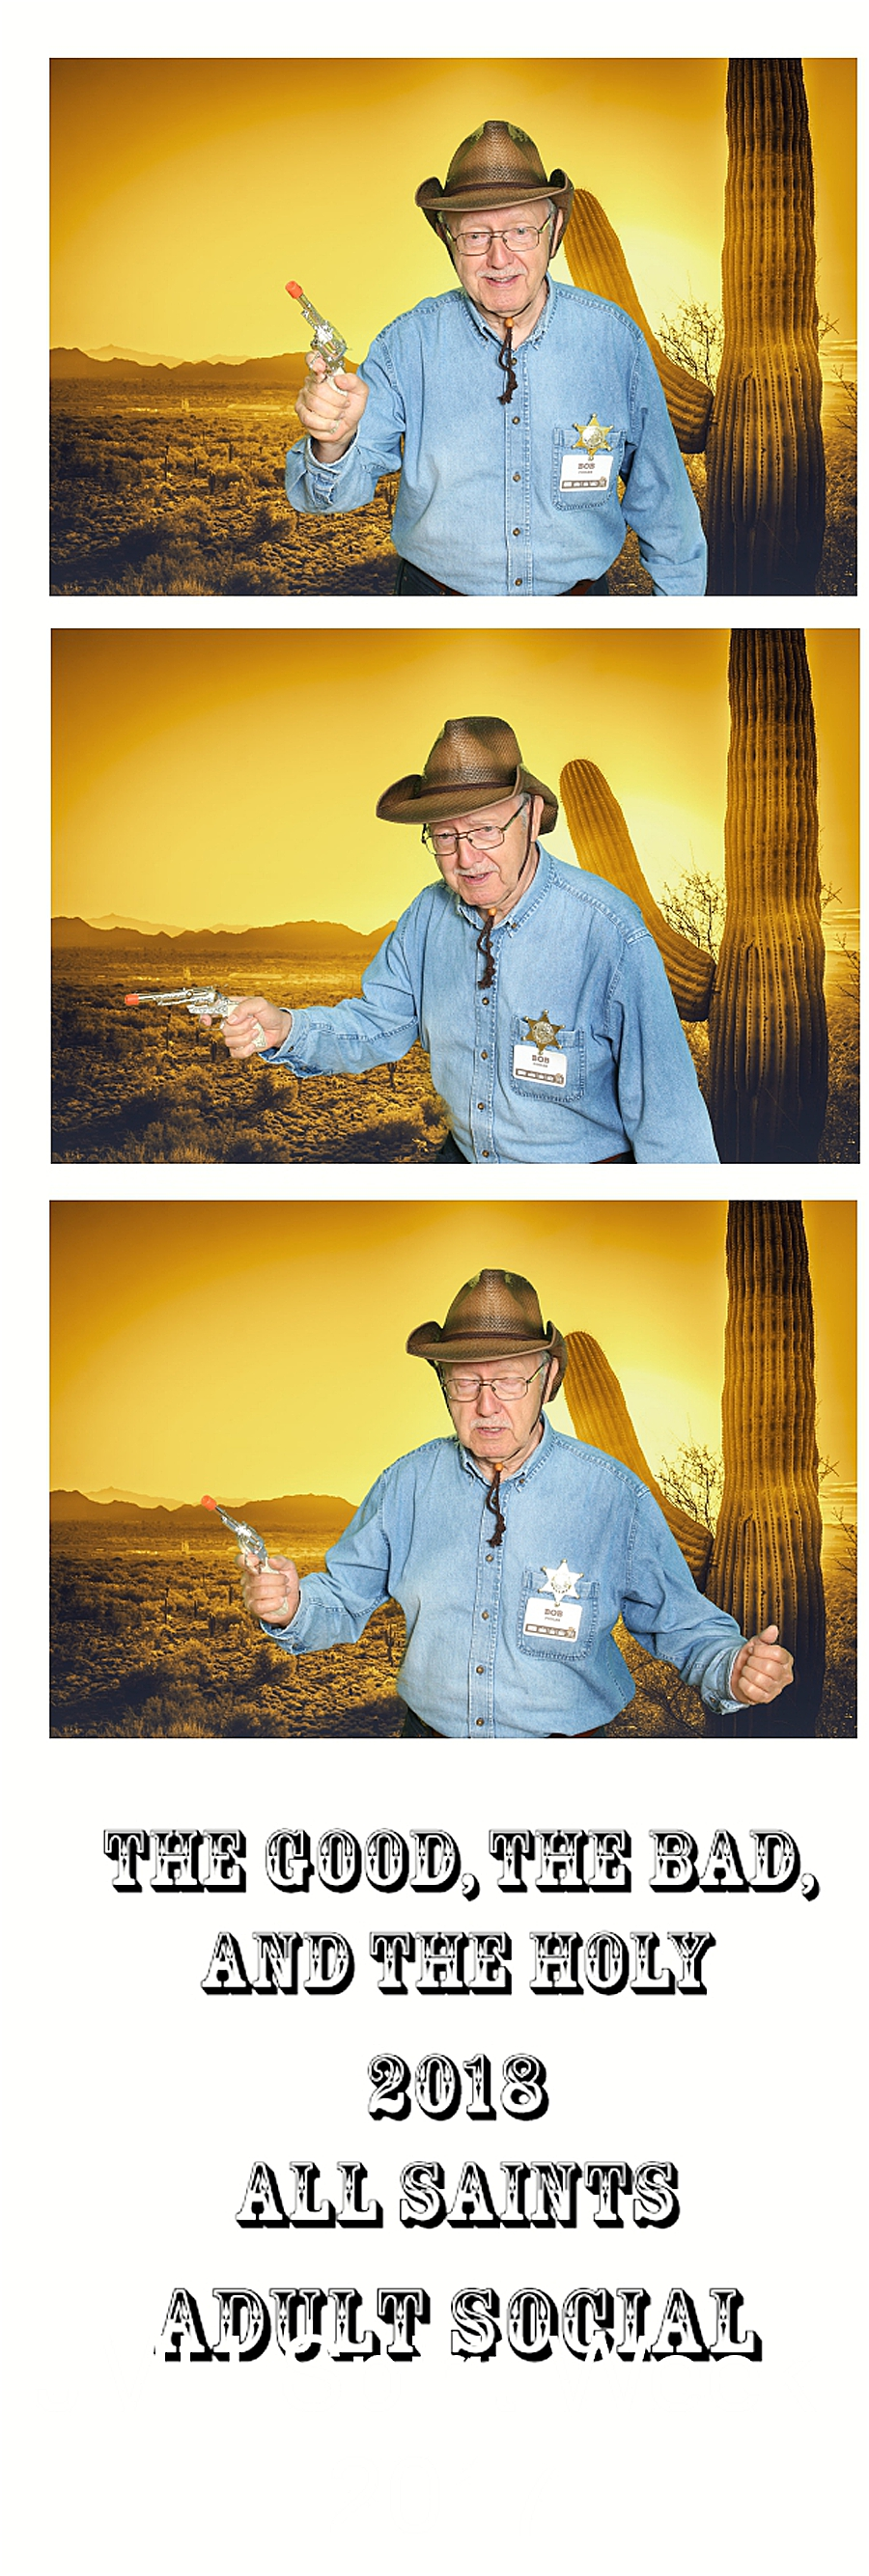 Knoxville Photo Booth_1315.jpg